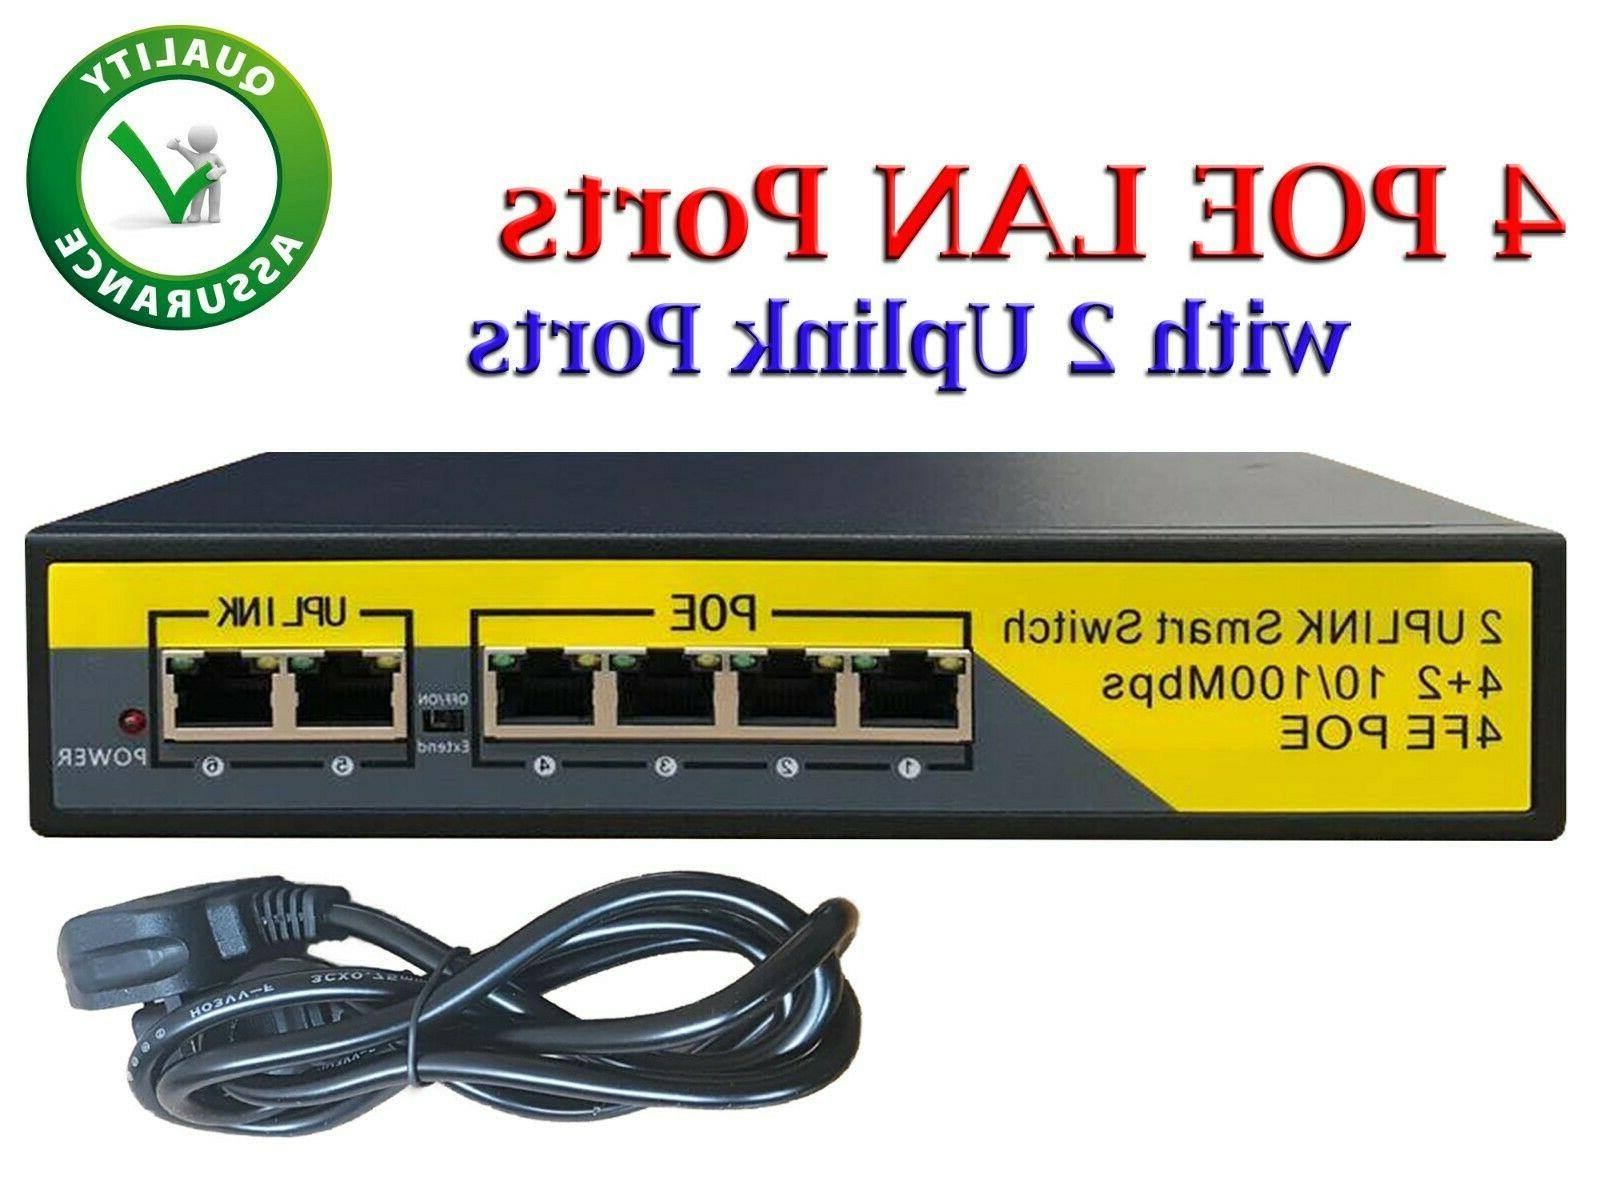 4x port poe power over ethernet switch